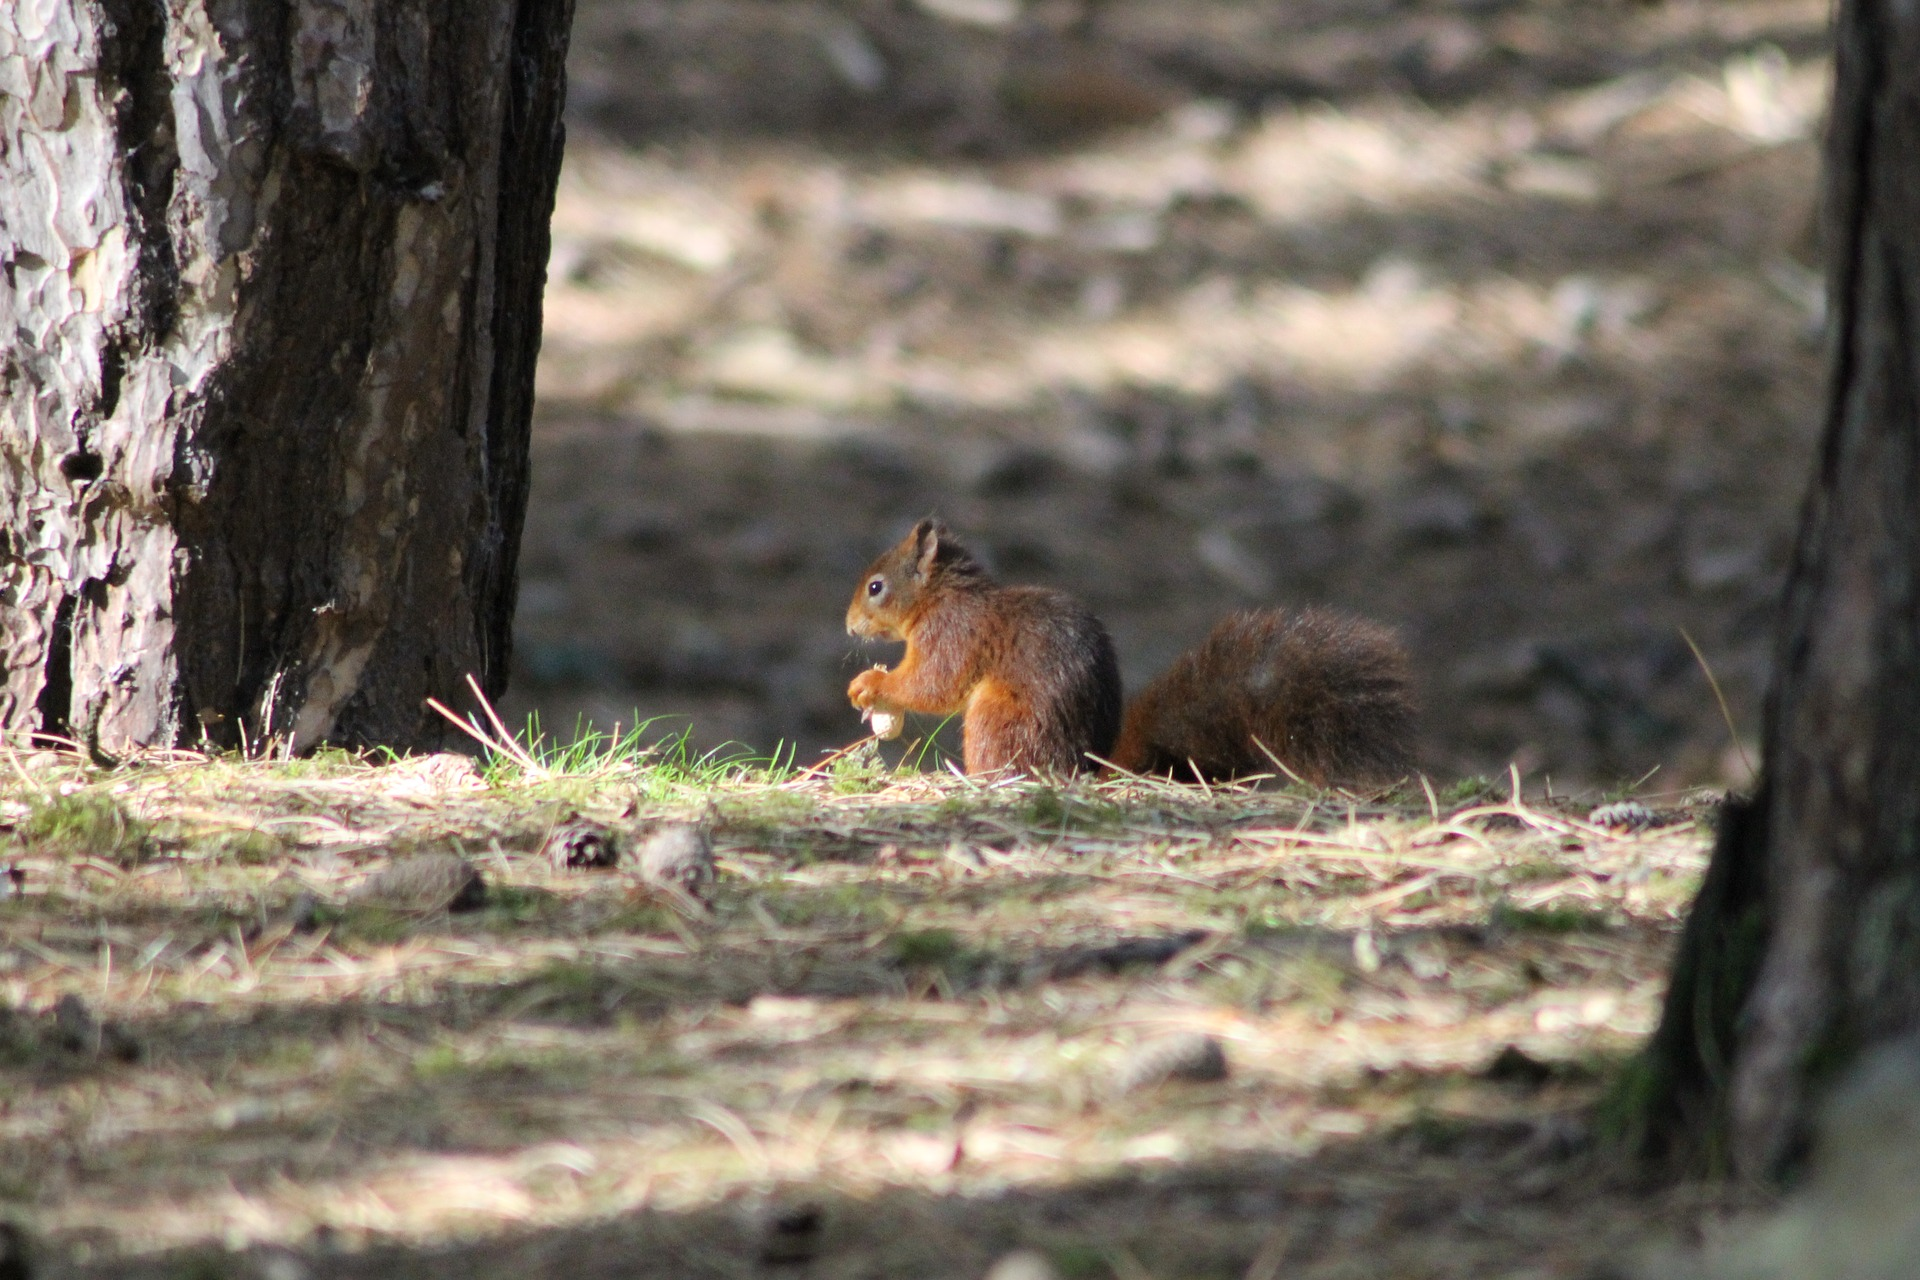 Conservation of the red squirrel